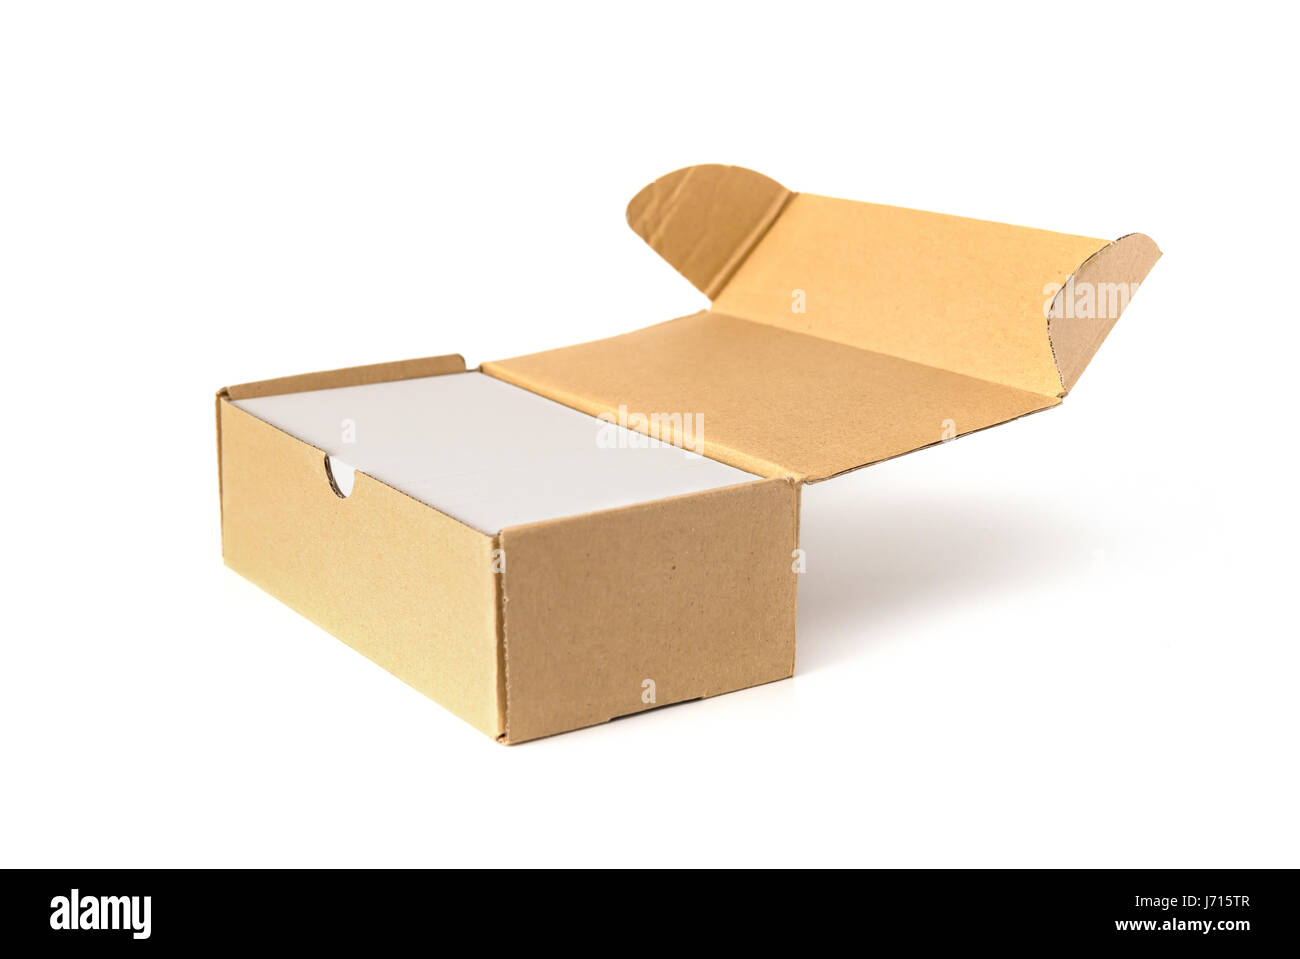 box of business cards on white Stock Photo, Royalty Free Image ...